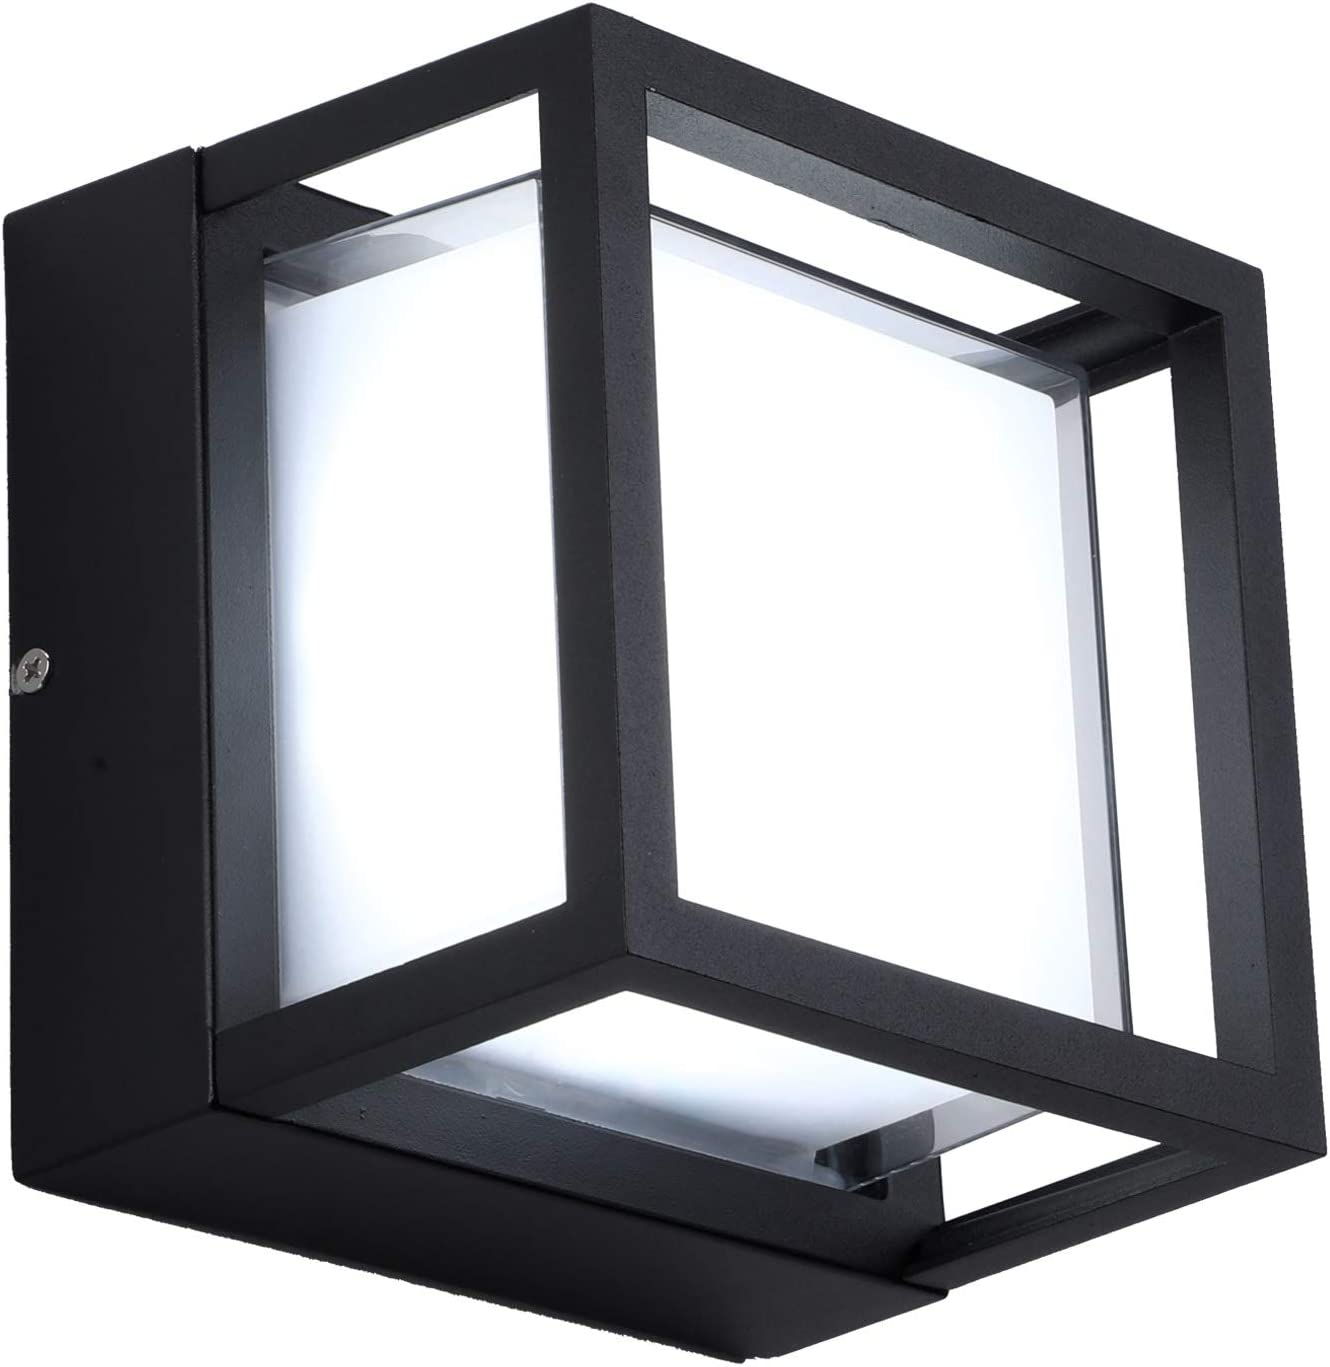 LIGHTESS Outdoor Wall Light Modern Exterior Light Fixtures Square Outdoor Wall Sconce 18W Black Front Door Wall Lamp Ip65 Waterproof for Garden Pathway Yard, Cool White